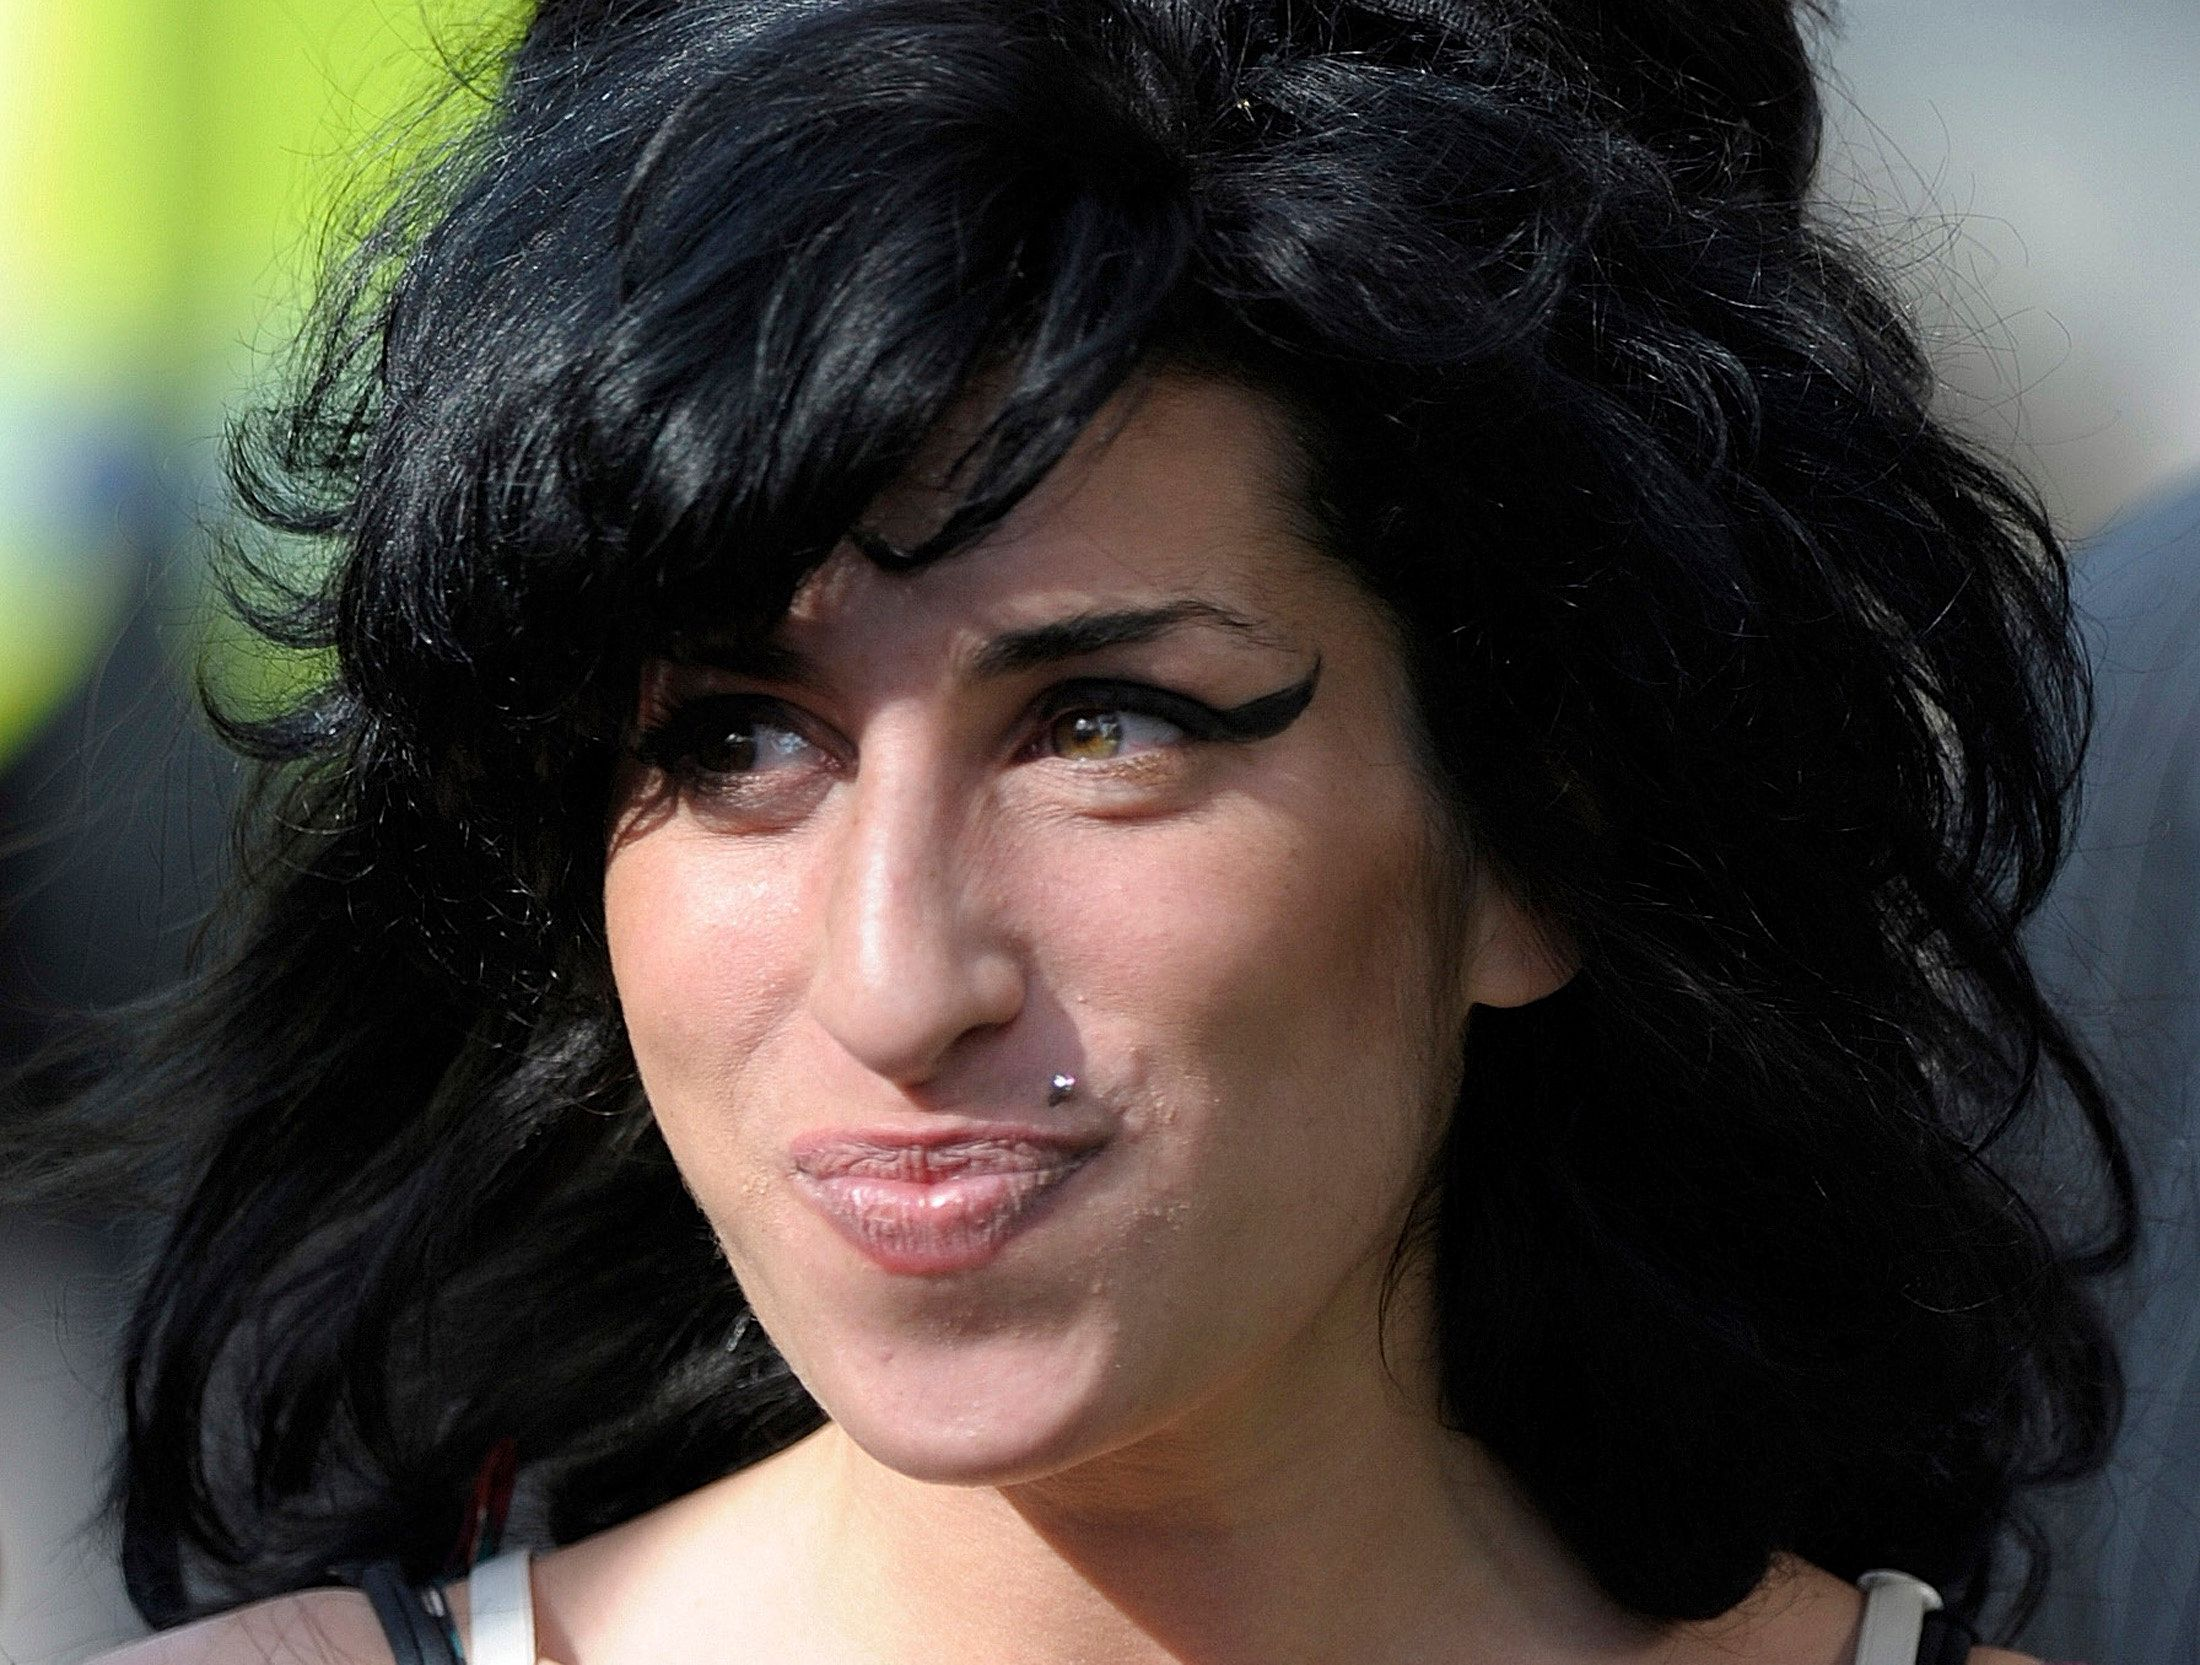 British singer Amy Winehouse arrives at the City of Westminster Magistrates Court in central London March 17, 2009.     REUTERS/Kieran Doherty       (BRITAIN ENTERTAINMENT SOCIETY)